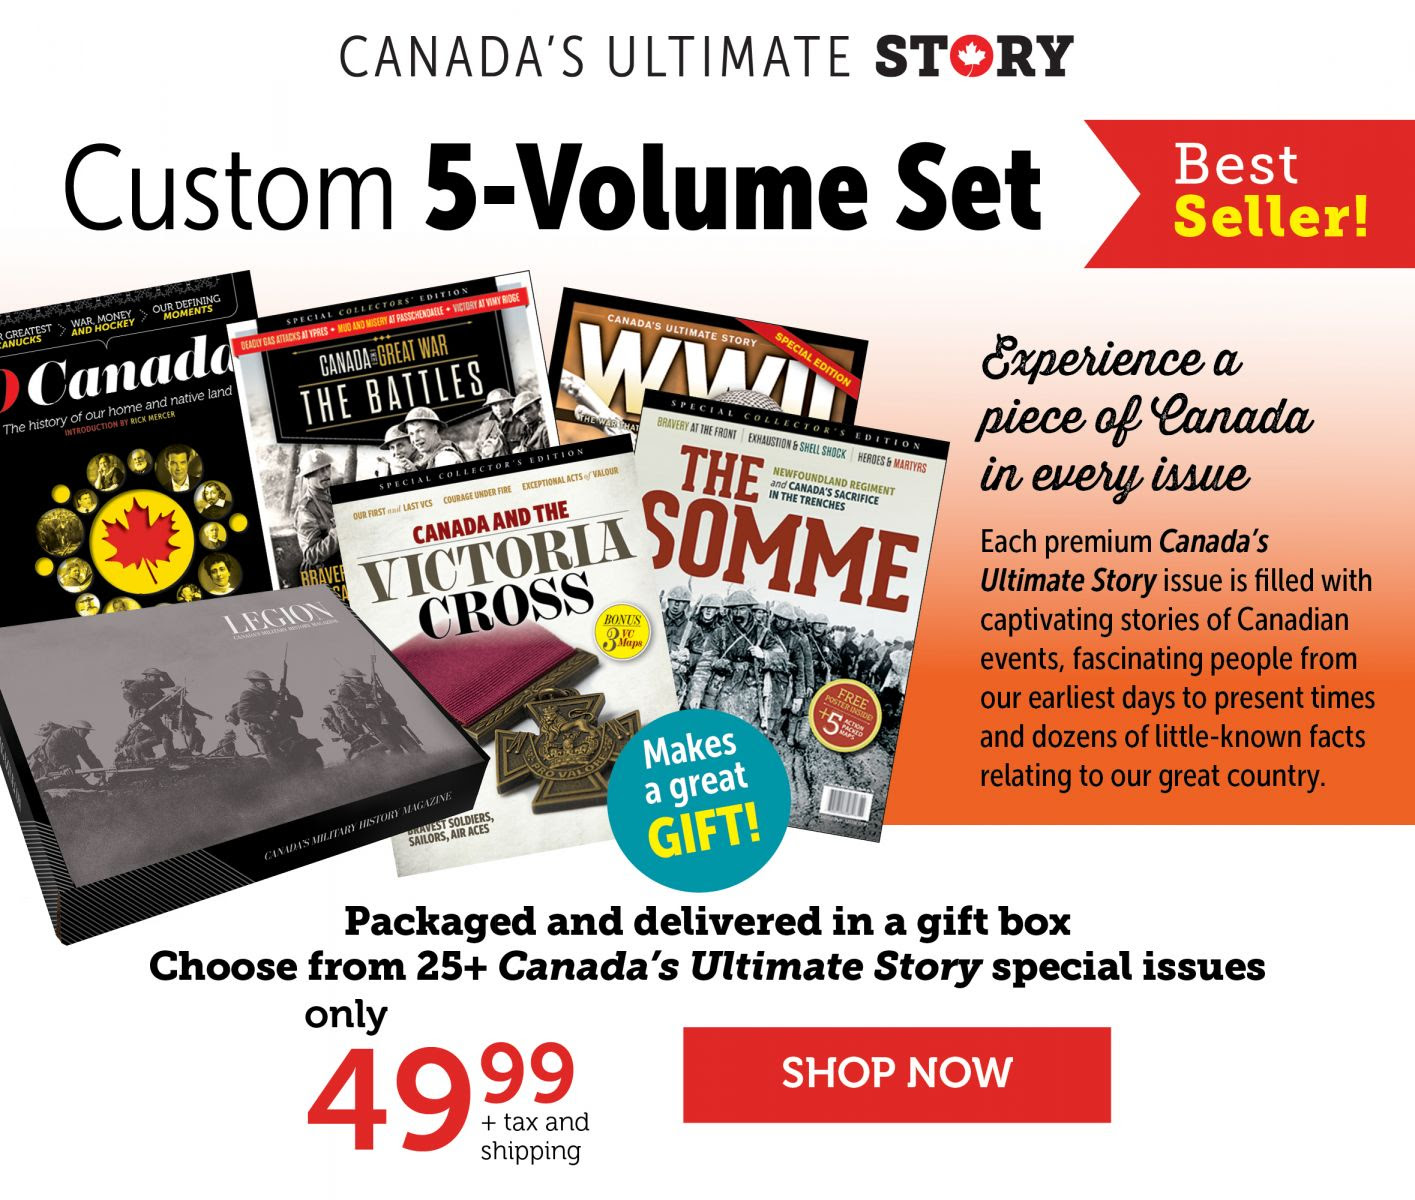 Canada's Ultimate Story - Custom 5-Volume Set